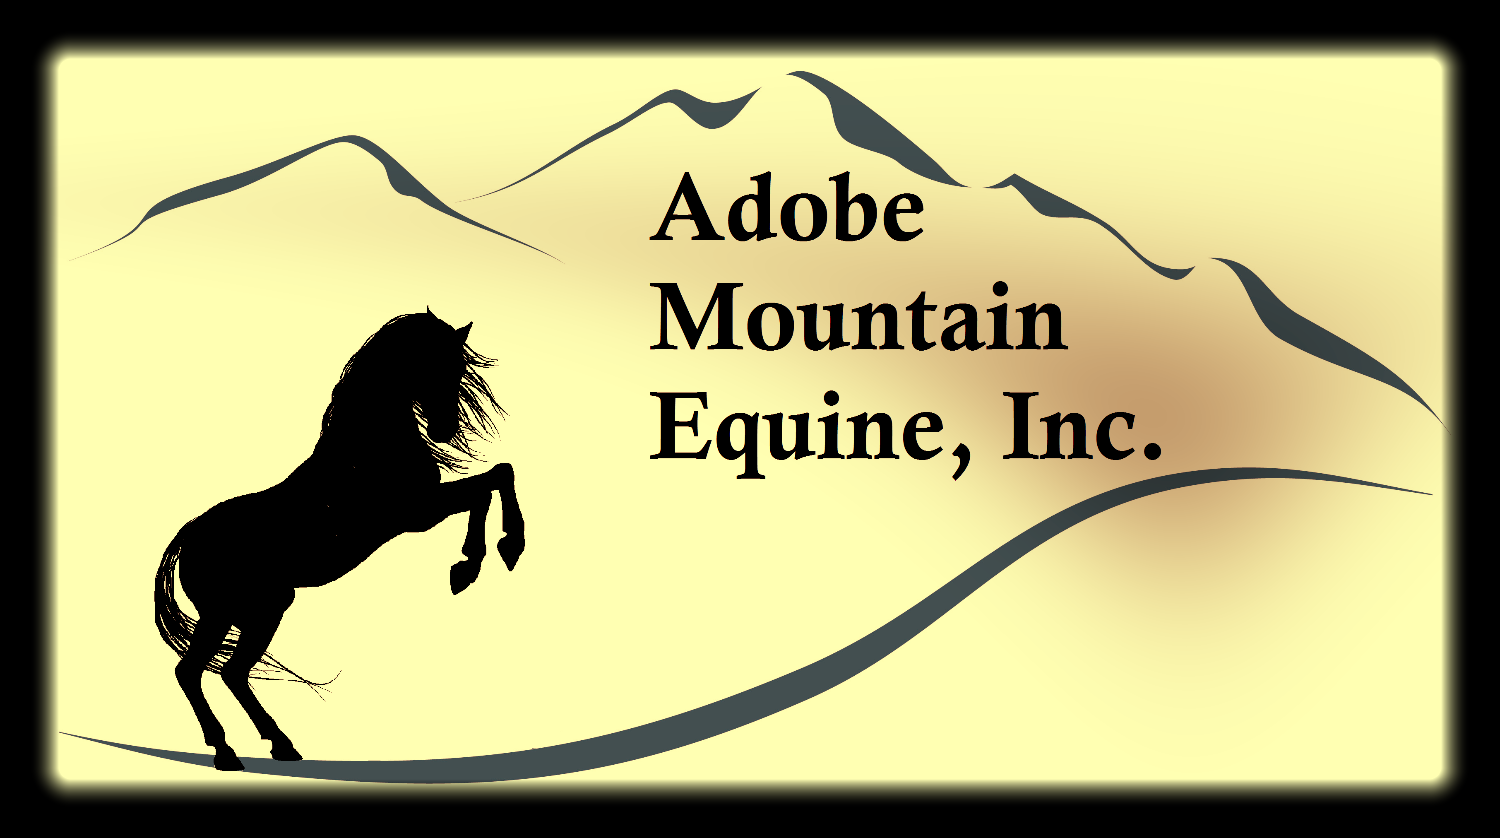 Adobe Mountain Equine, Inc. LOGO_edited